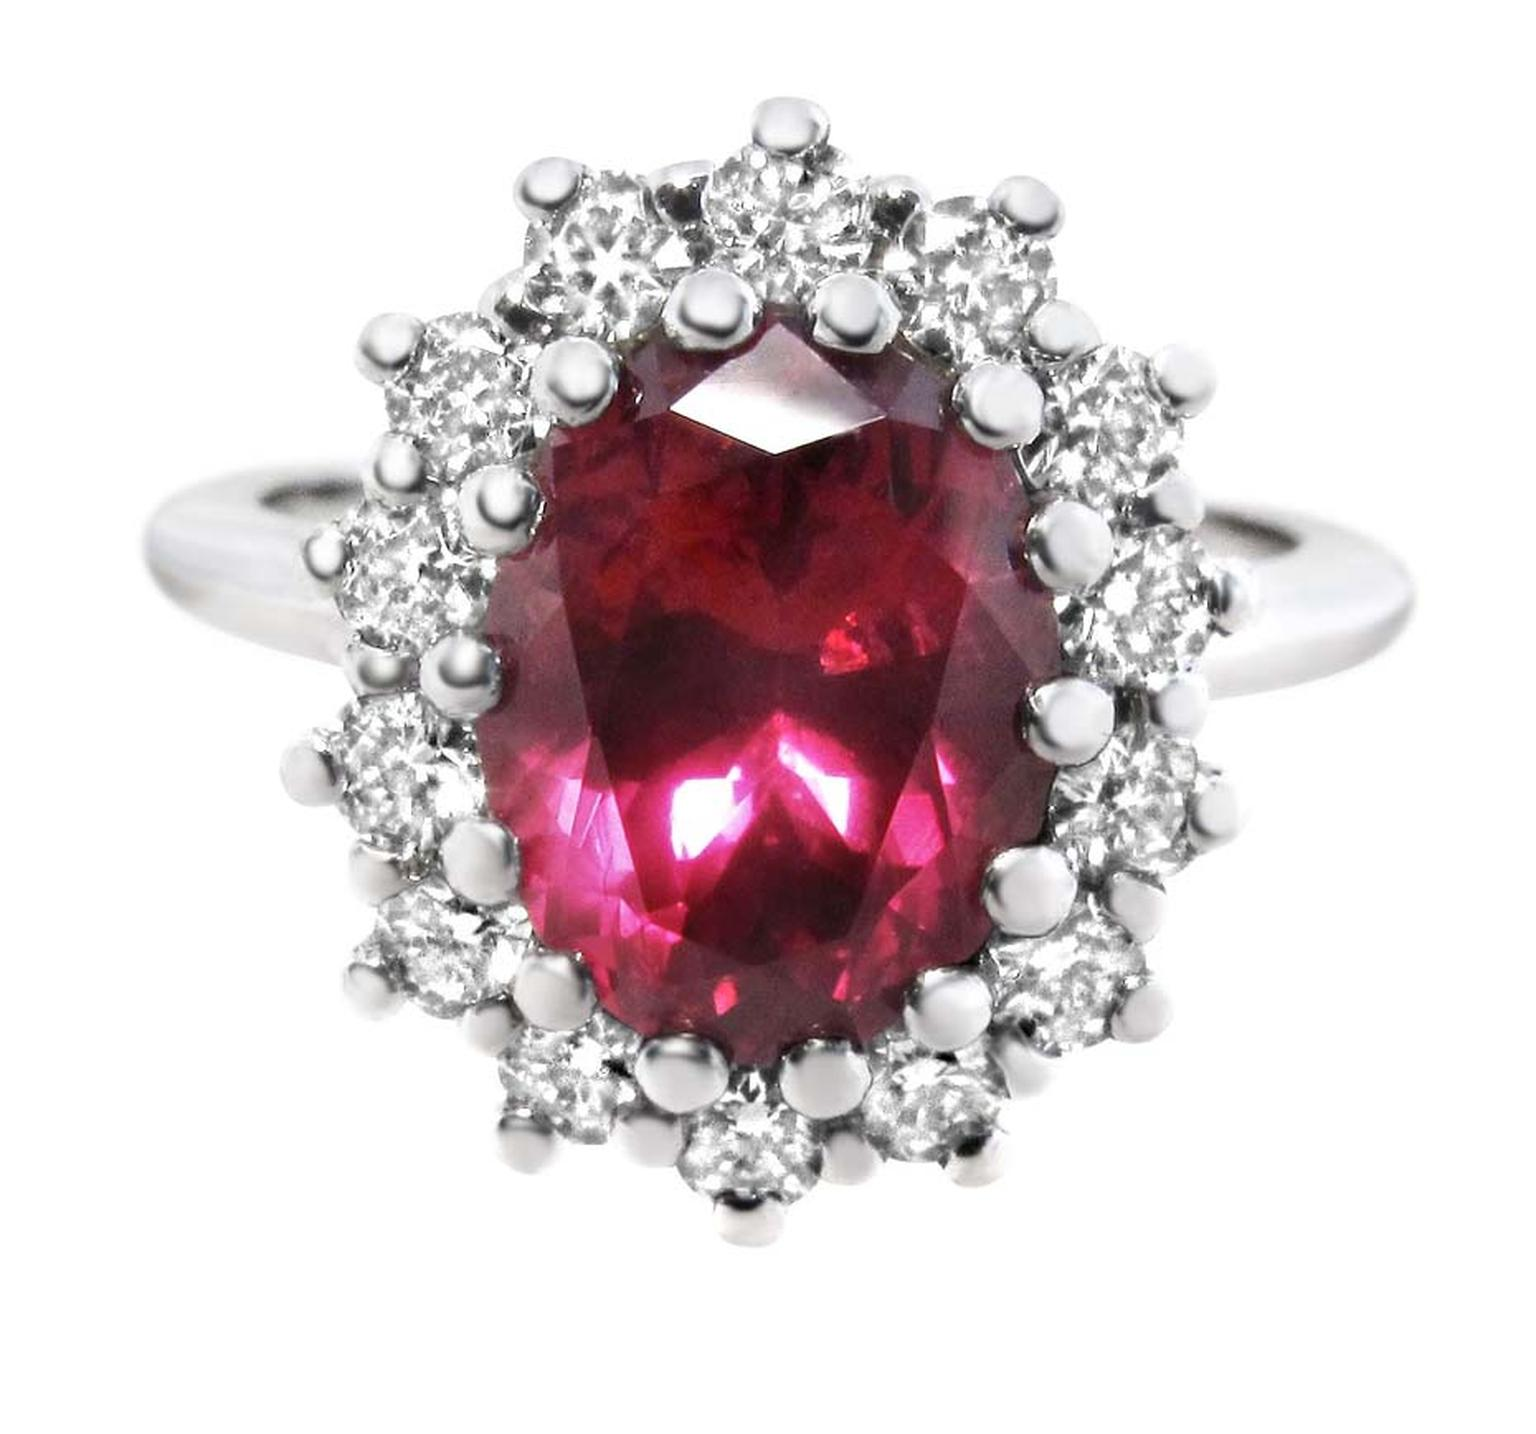 Ingle & Rhode Cluster ruby engagement ring featuring an untreated oval-shaped Malawi ruby surrounded by brilliant-cut diamonds.